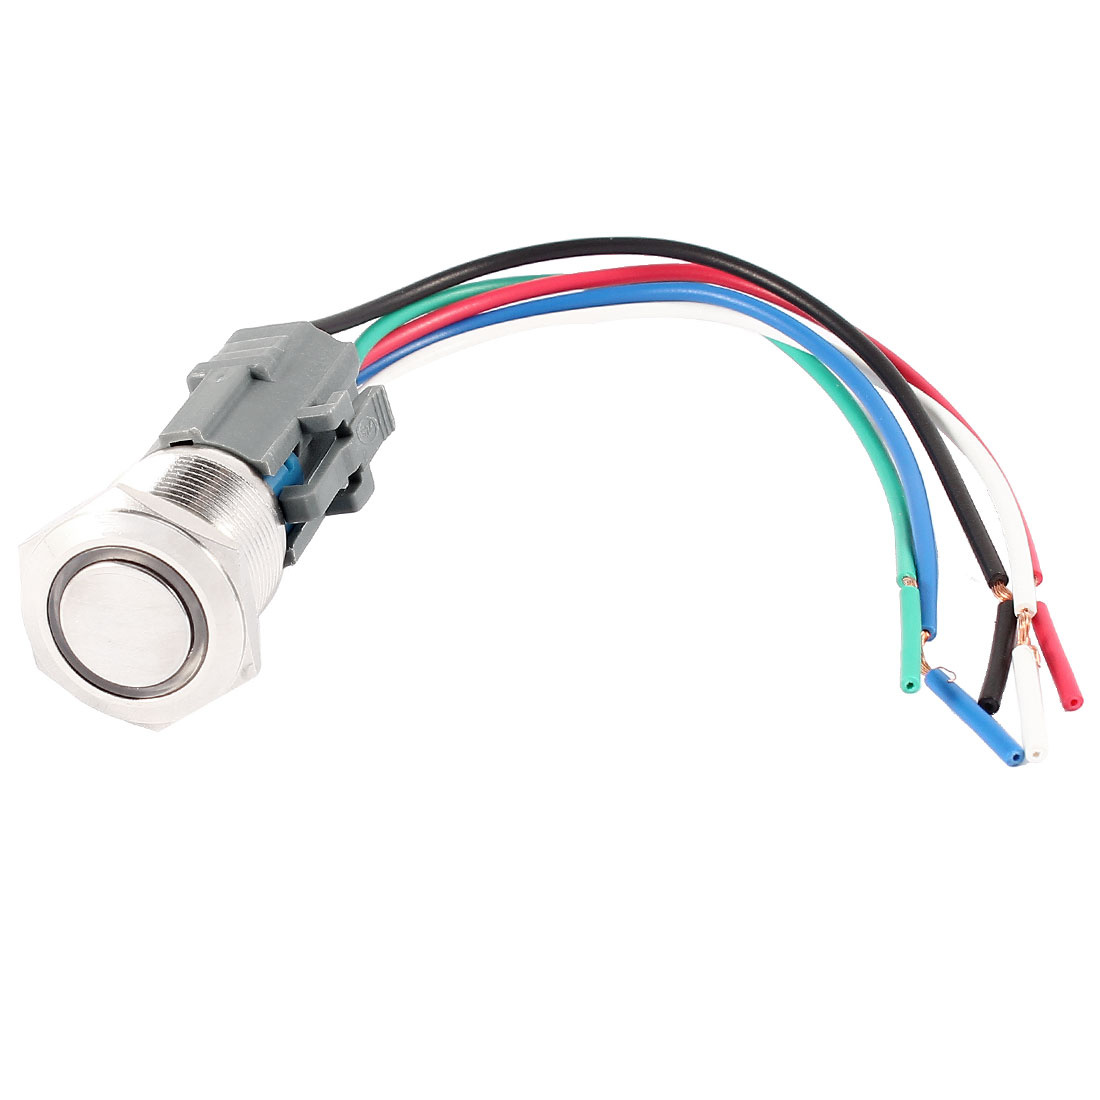 Flat Head SPDT 19mm DC 12V Green Pilot LED Lamp Metal Locking Push Button Switch